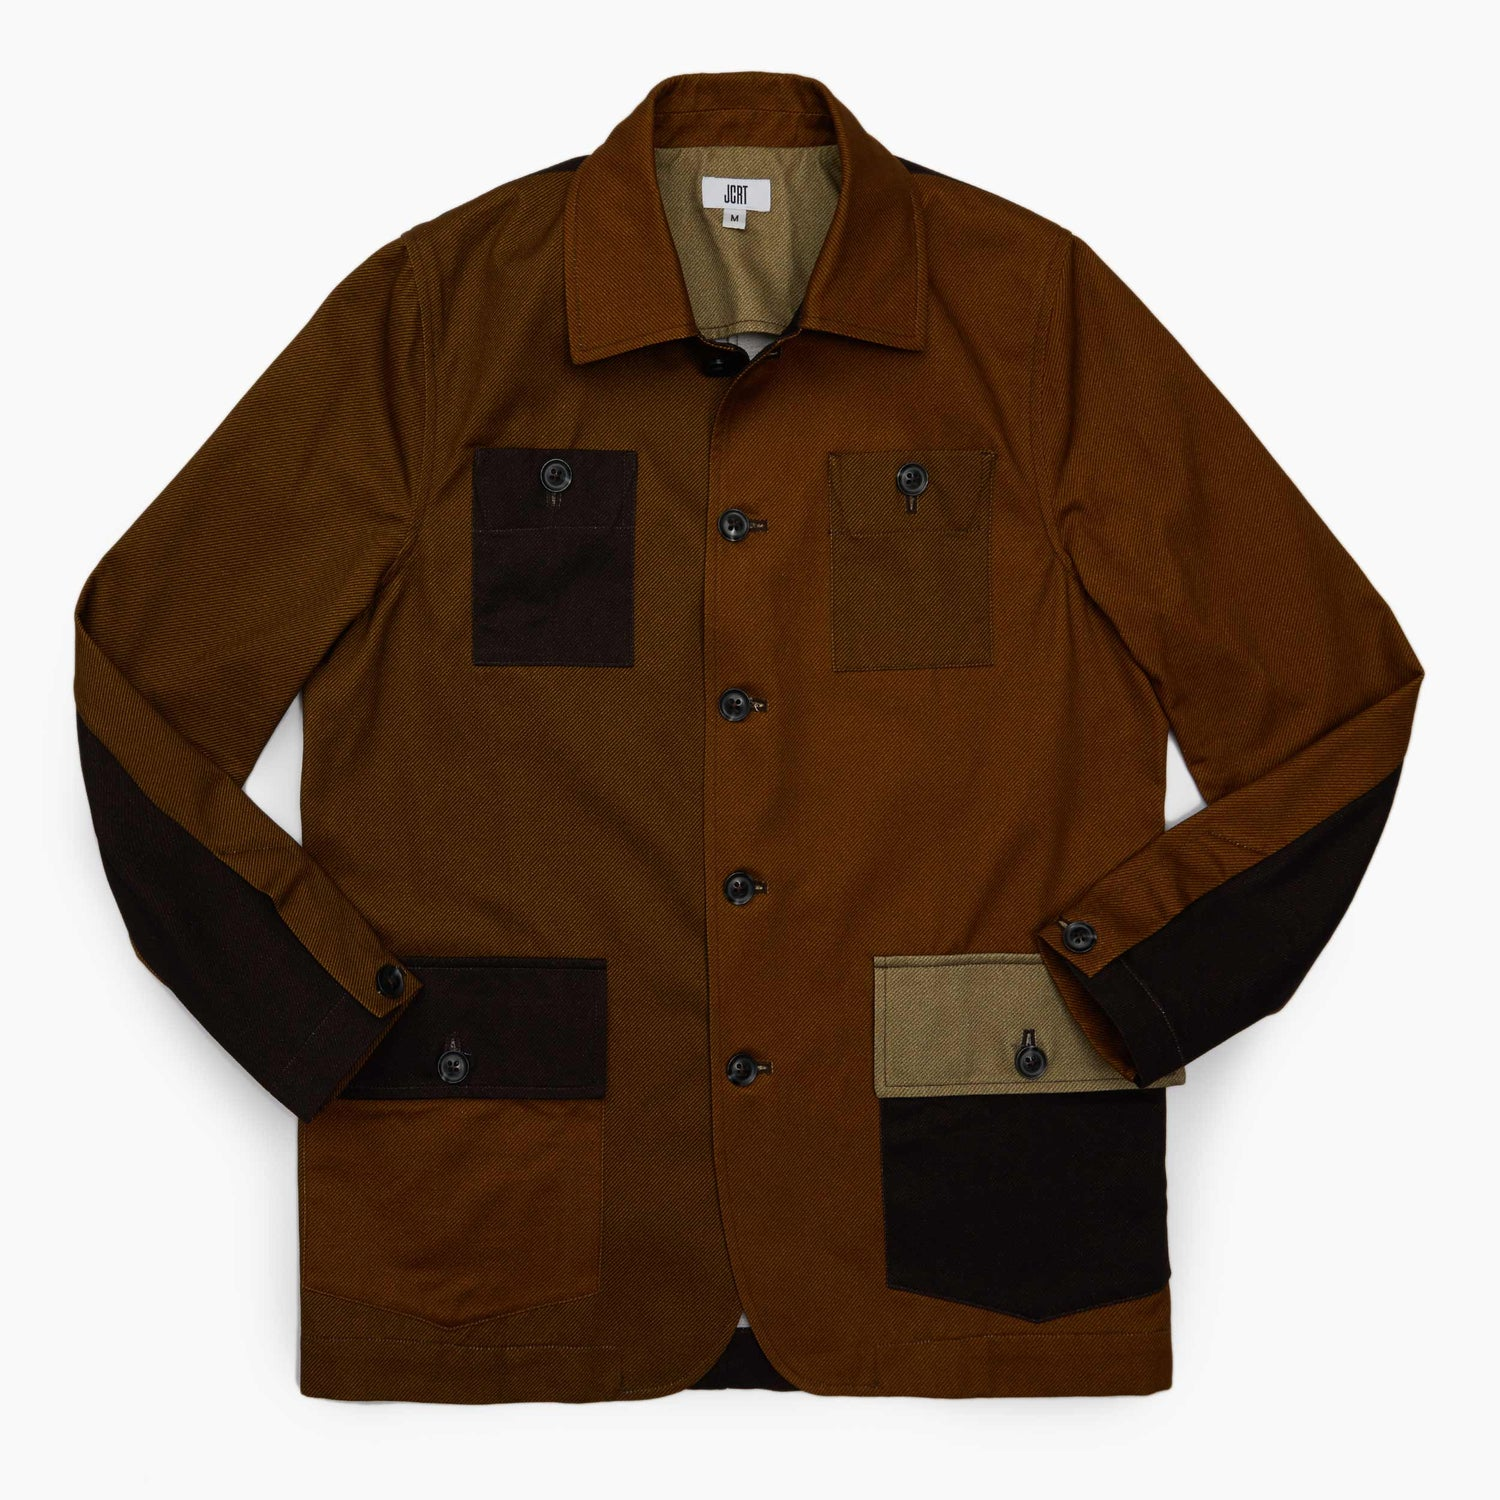 The Leather Twill Country Jacket